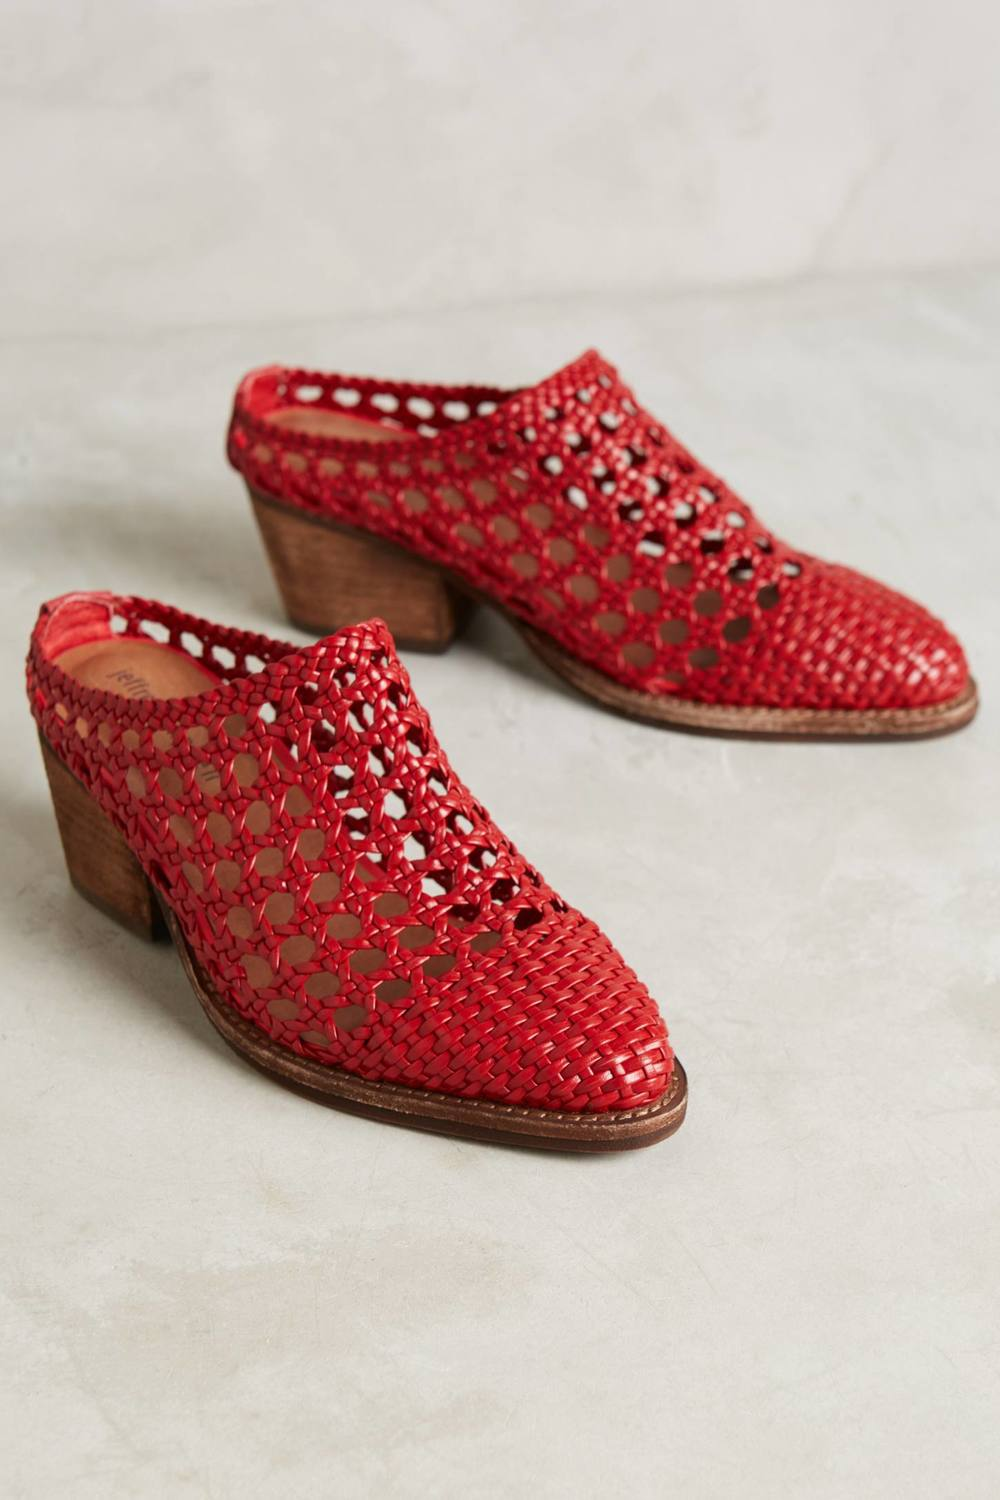 Jeffrey Campbell Armadillo Mules. Available in multiple colors. Anthropologie. $188.